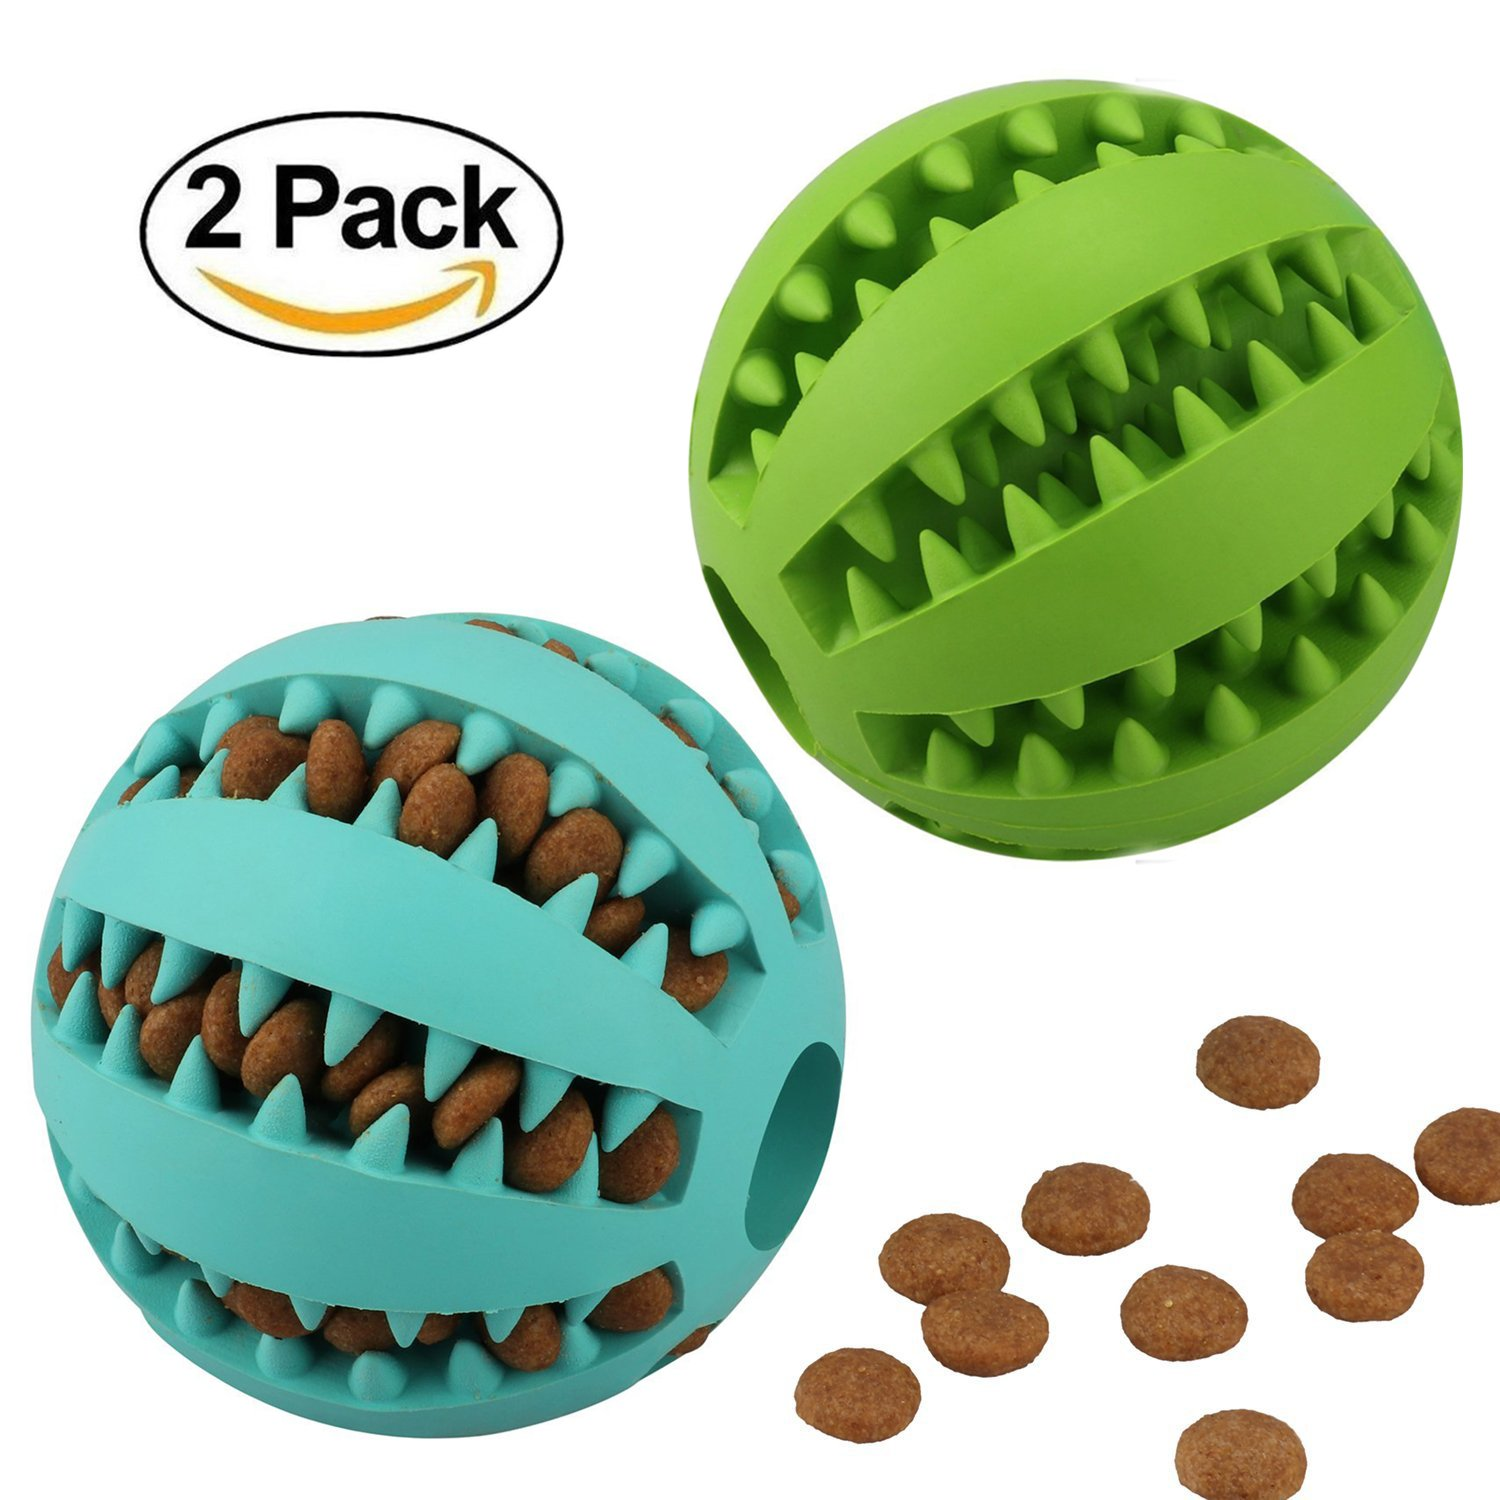 2 Pack Dog Toy Balls Bite Resistant Soft Rubber Bouncy Treat Pet Toys Ball Tooth Cleaning IQ Training Chew Ball Toy